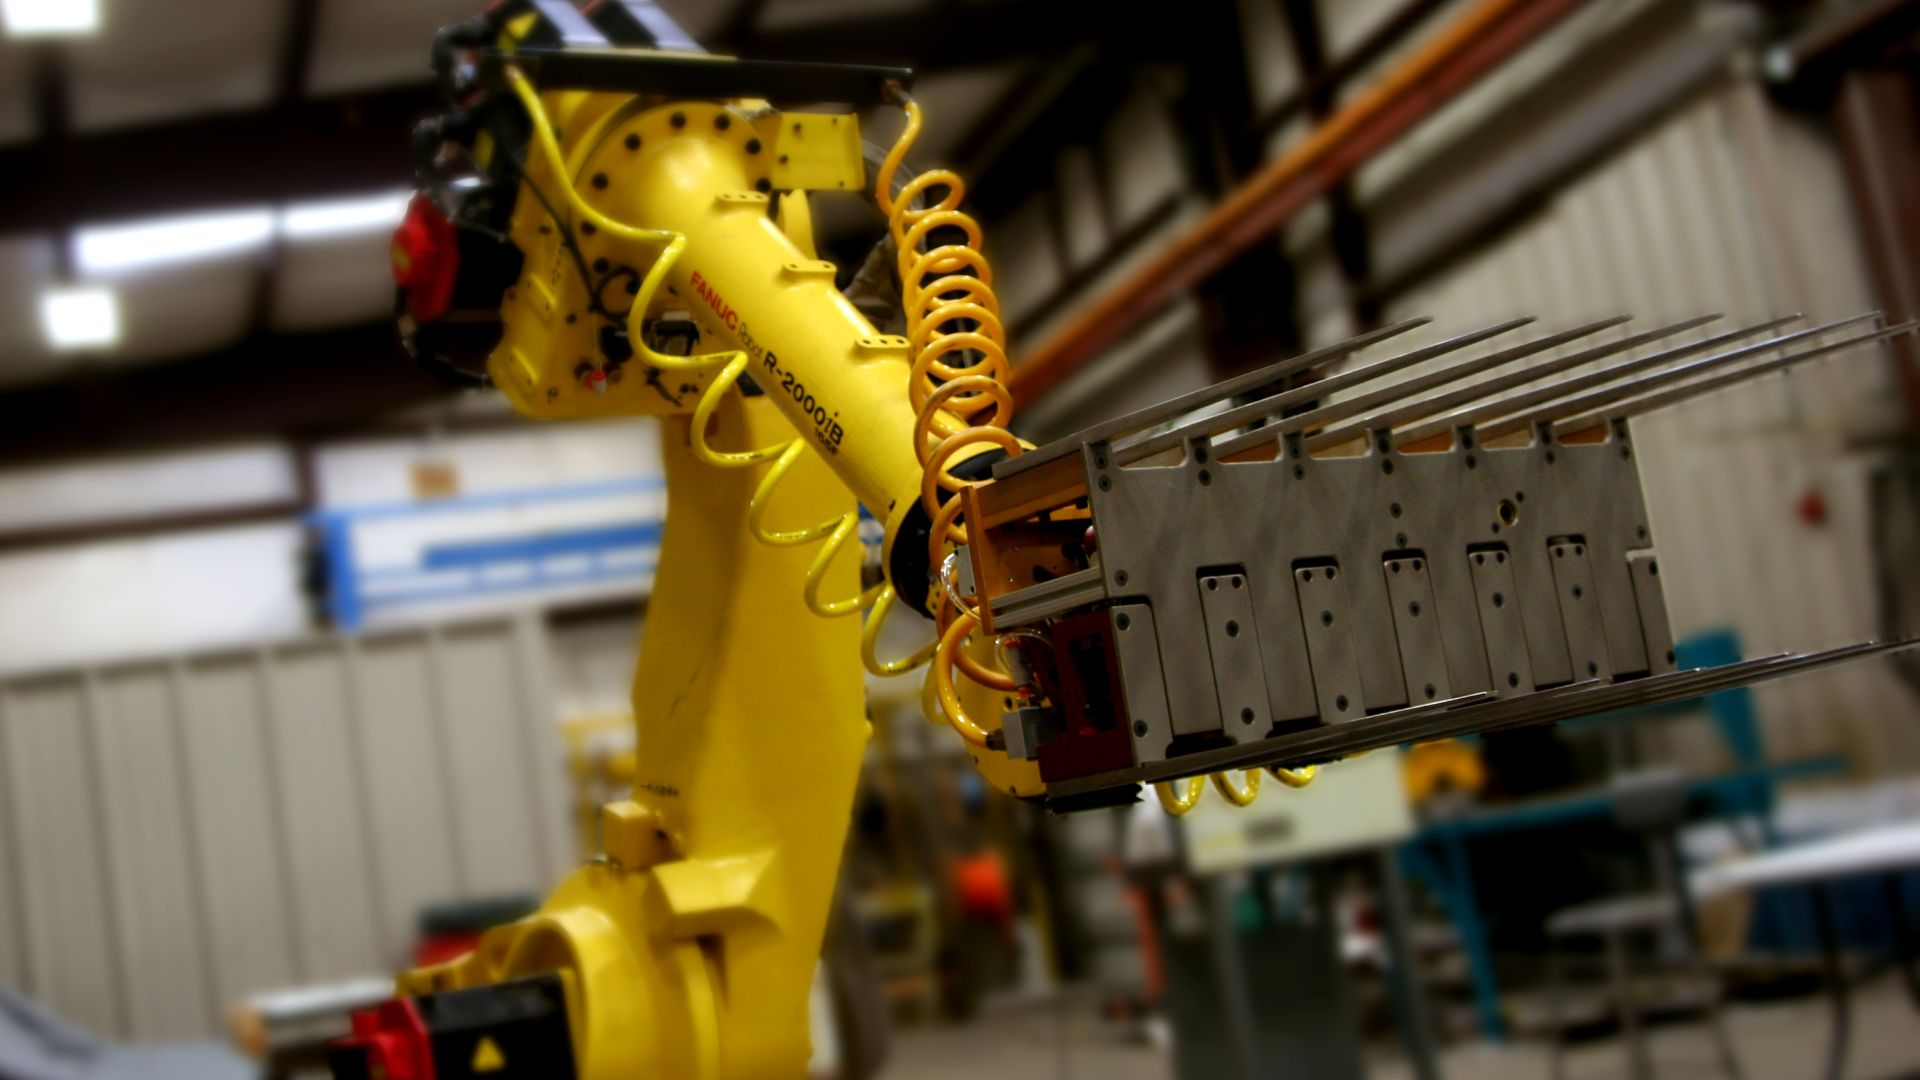 This warehouse automation system's primary function is palletizing cartons.  This Fanuc Arm Robot utilizes an EOAT (End of Arm Tool), ...